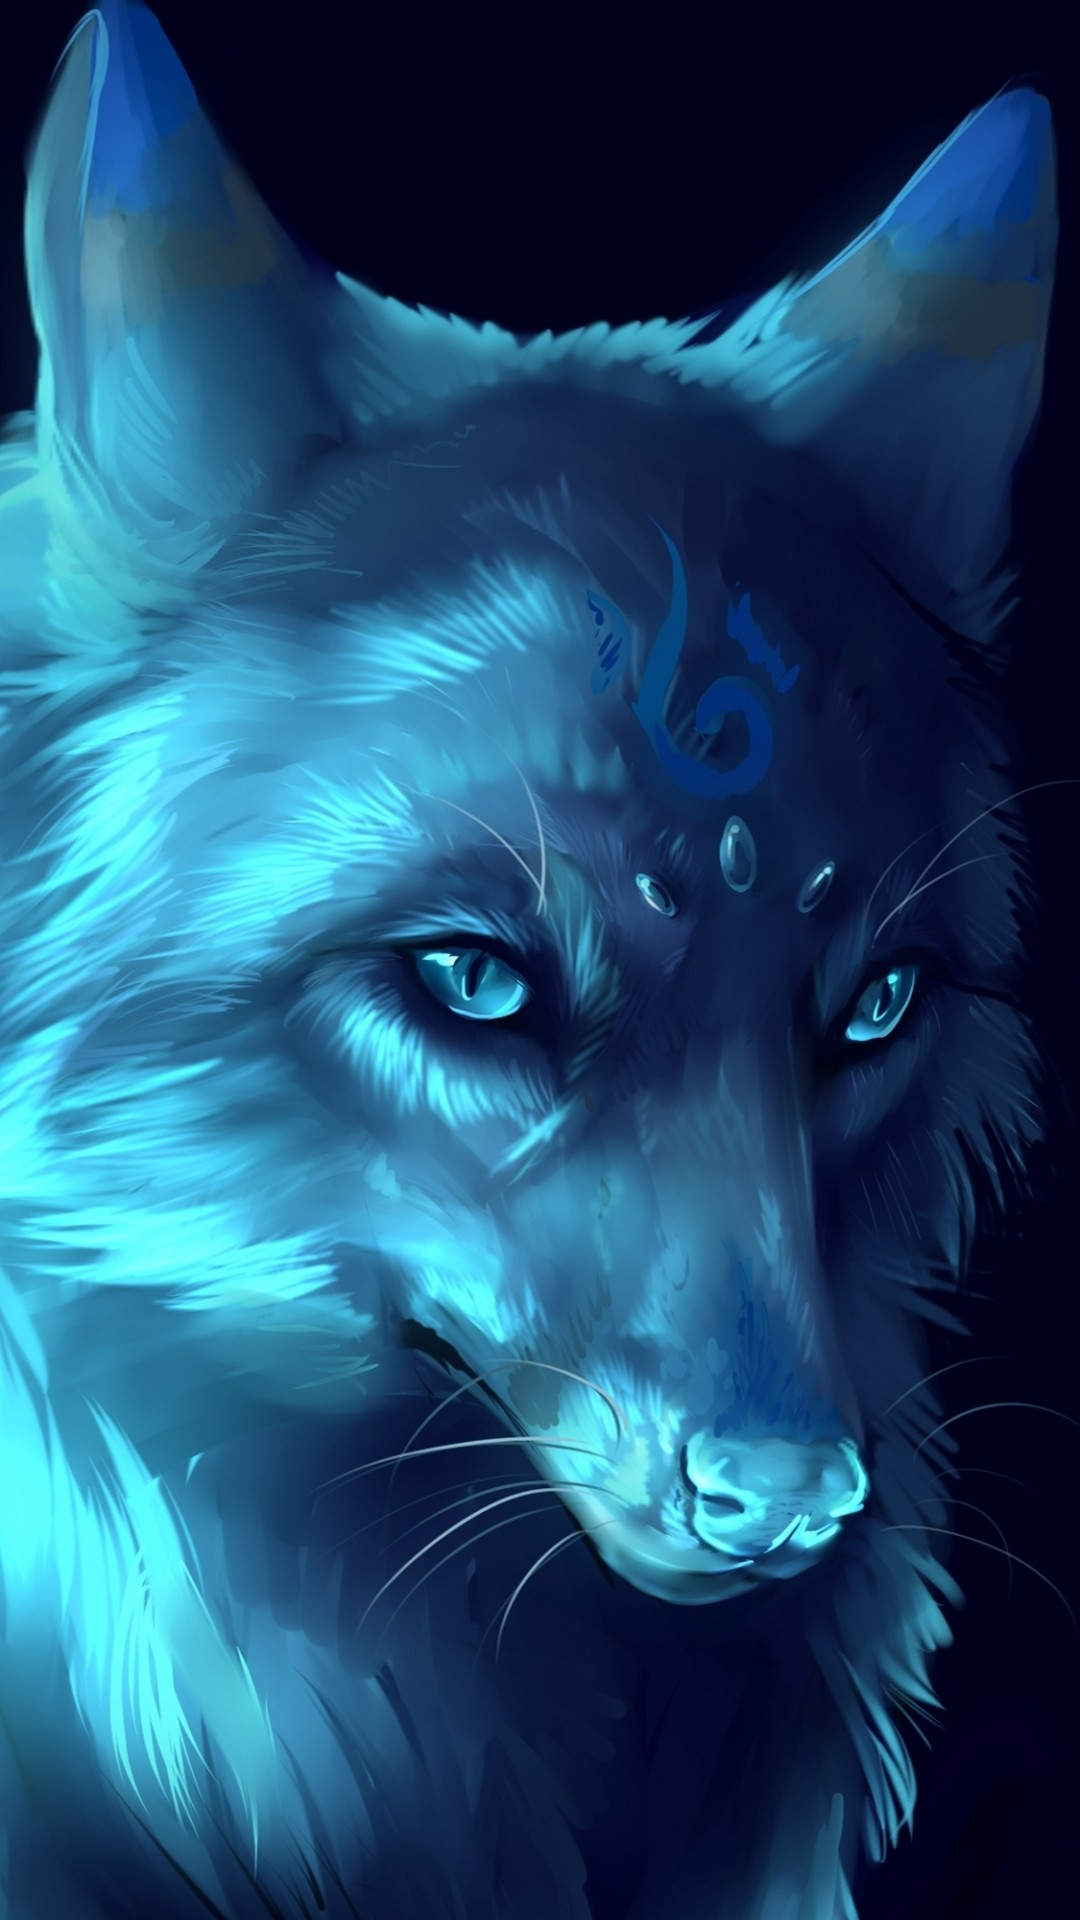 Animated Wolf Wallpapers Wallpaper   Data Src Free - Wolf Anime - HD Wallpaper